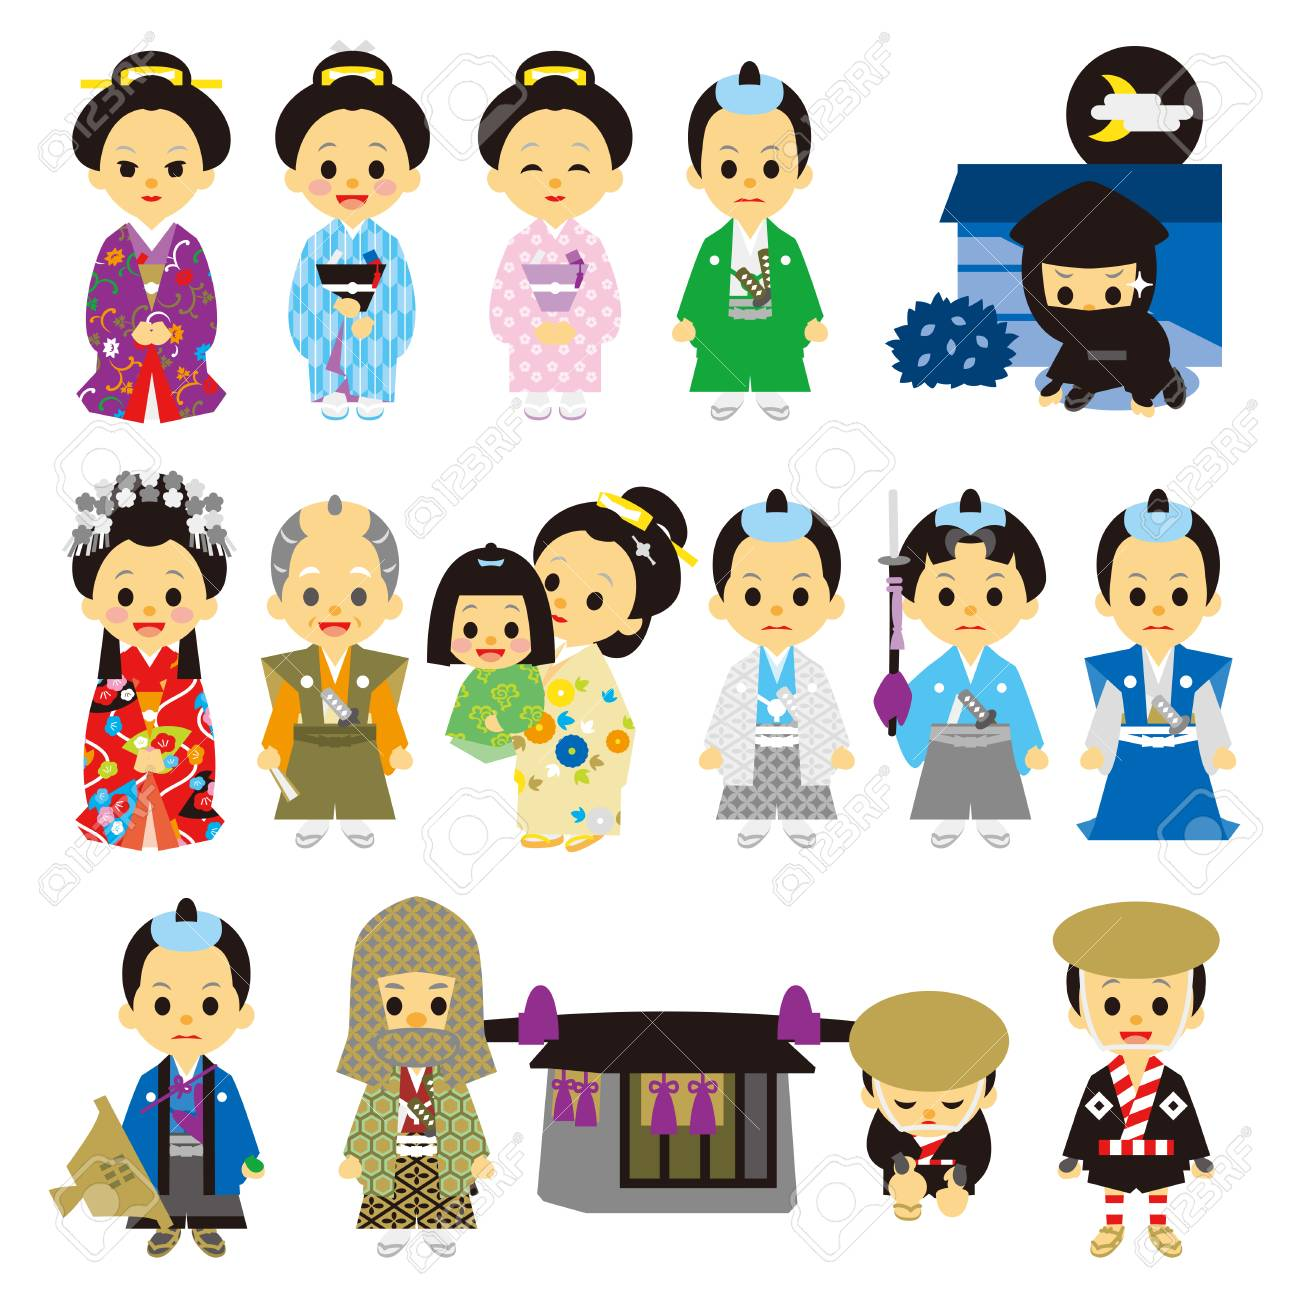 Japanese Free To Use Clipart - Japanese People Clip Art , Free Transparent  Clipart - ClipartKey